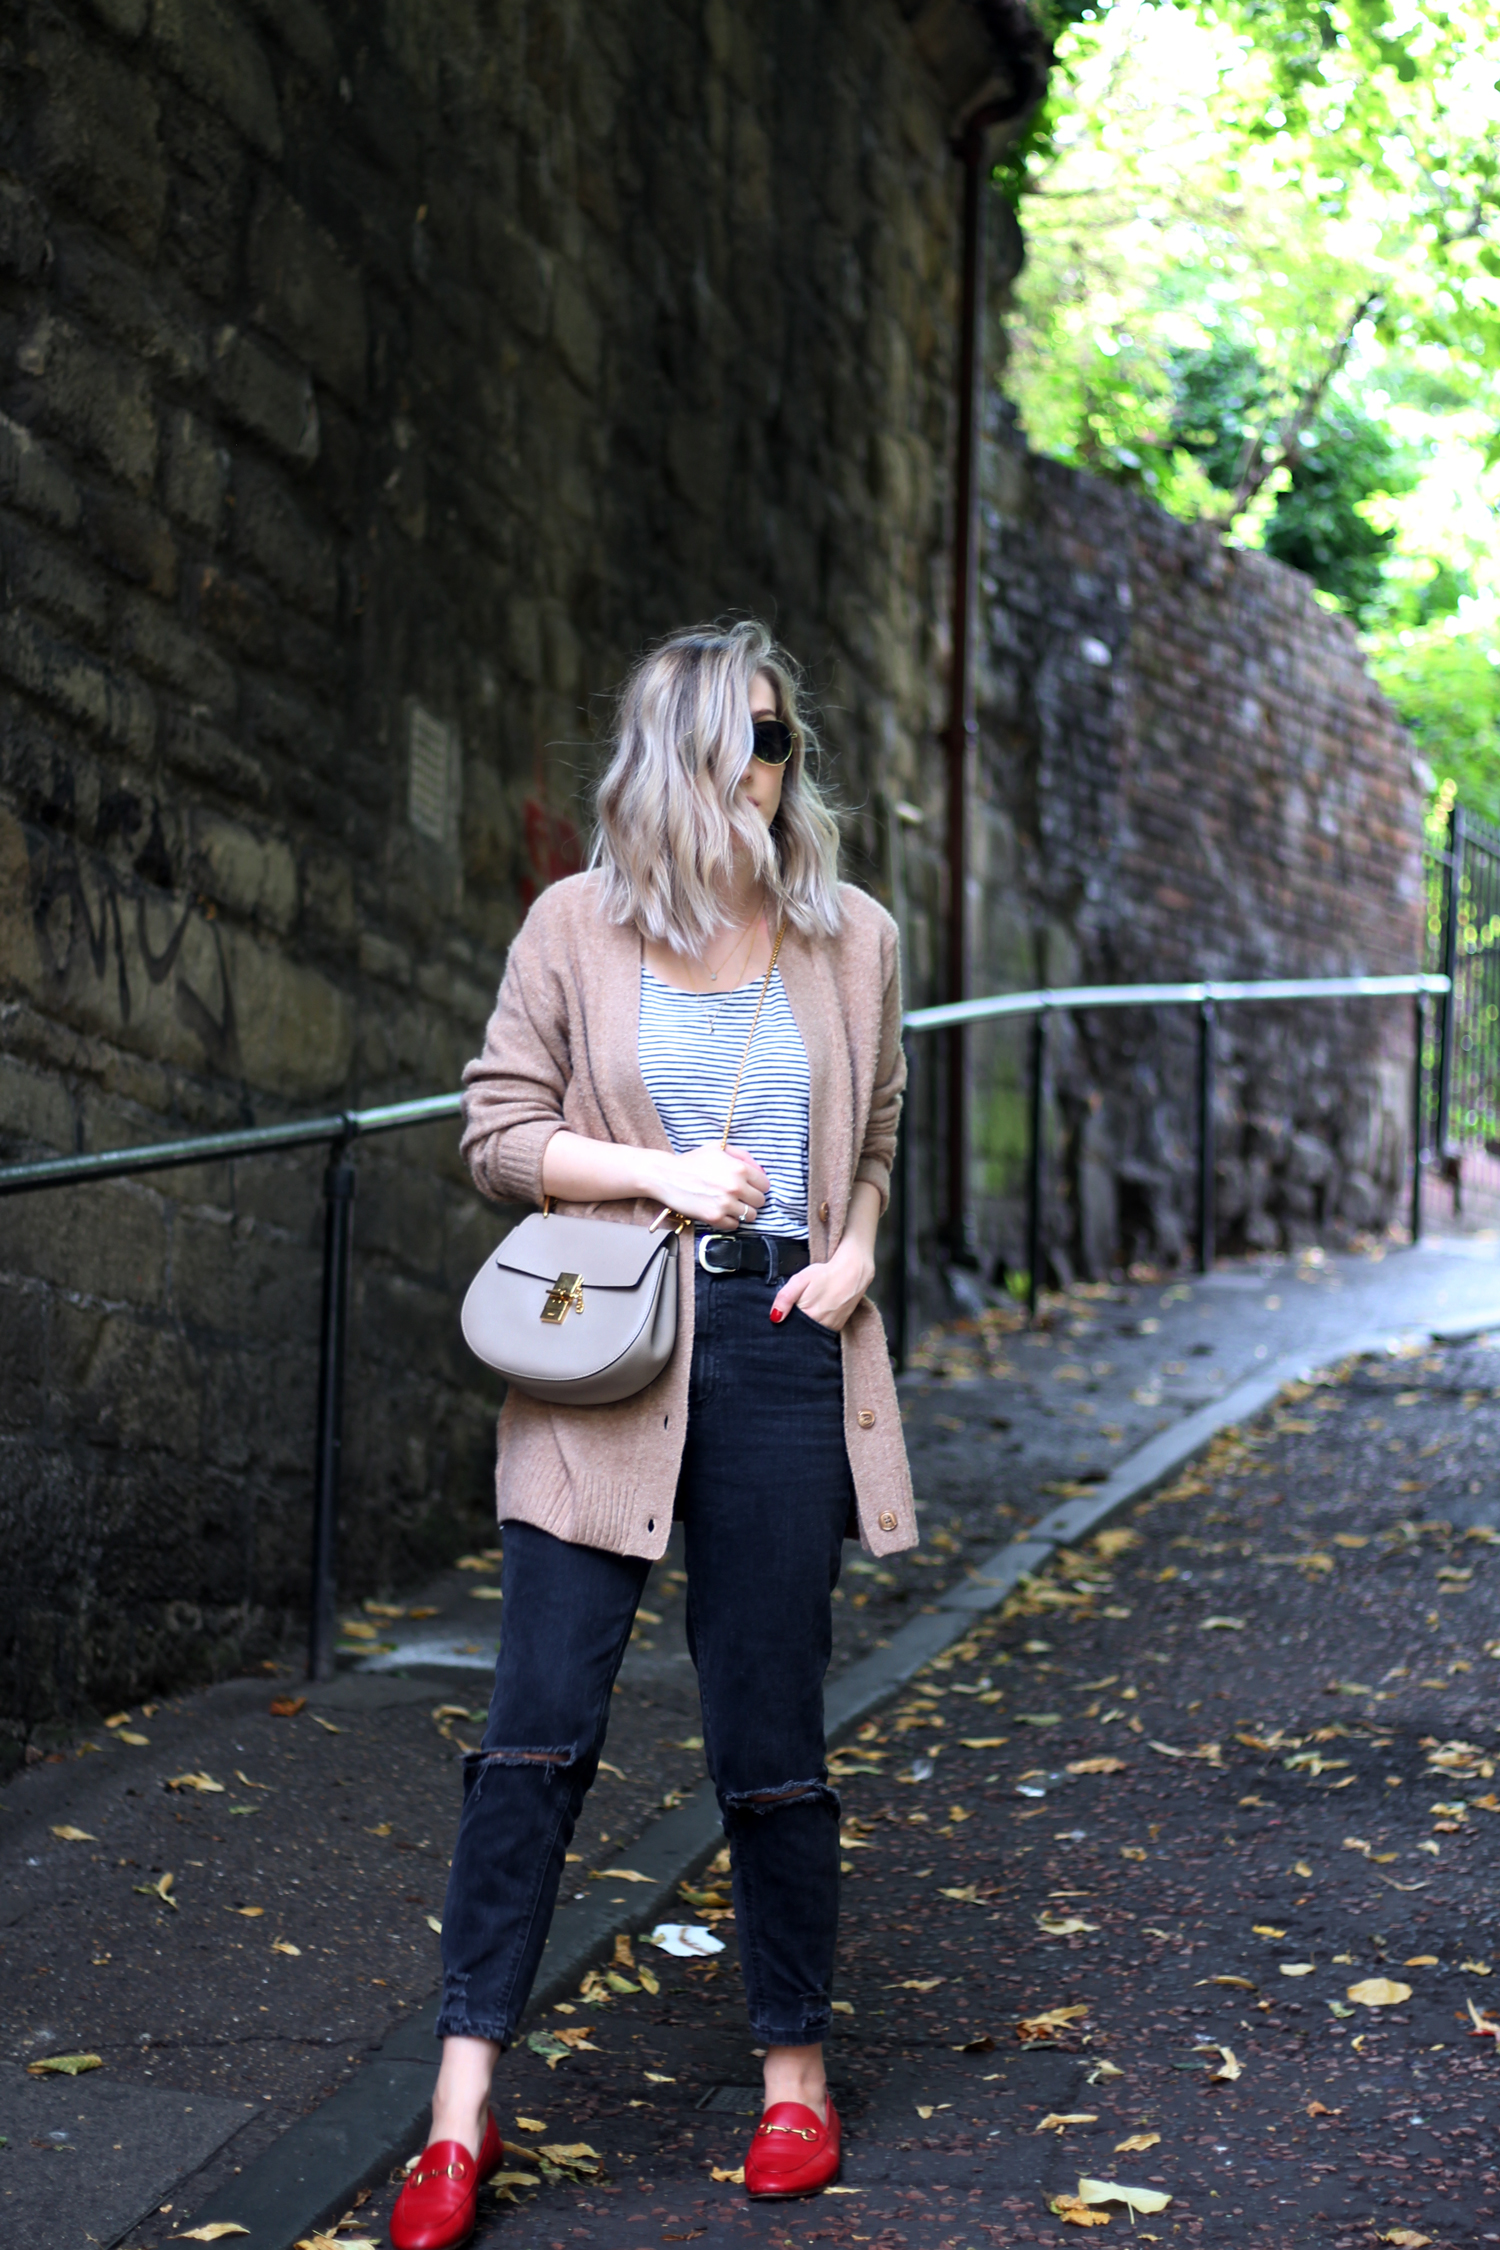 sunglasses-camel-cardigan-asos-ripped-boyfriend-jeans-2